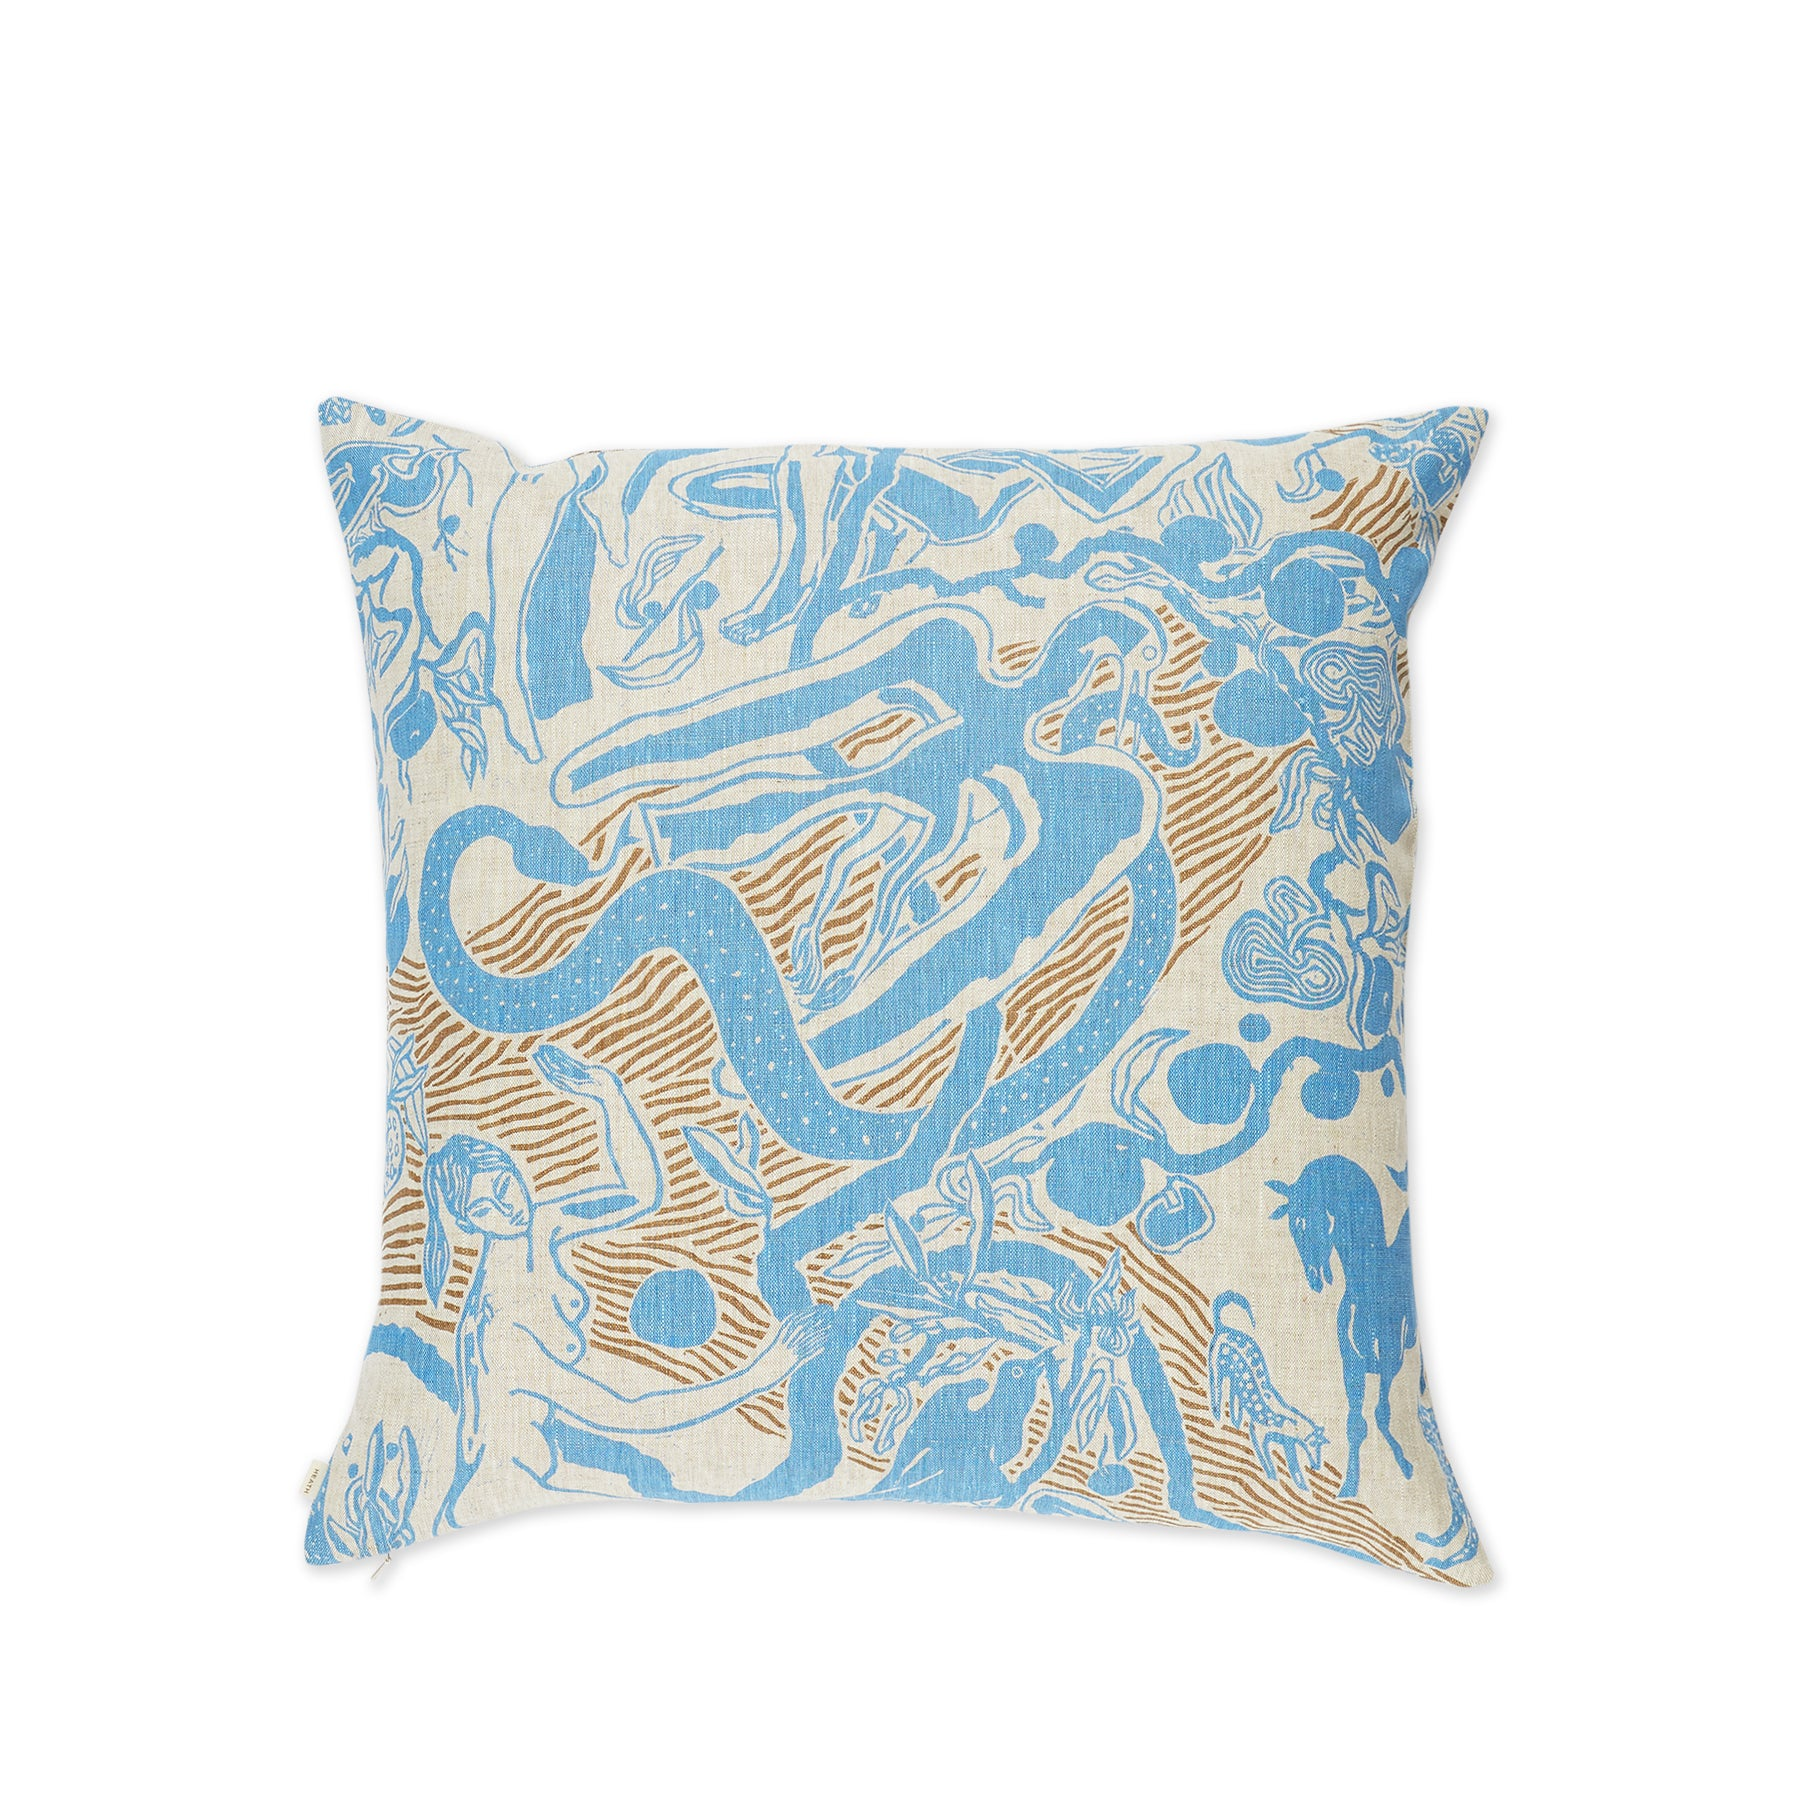 Eden Pillow in Blue and Stone Zoom Image 1